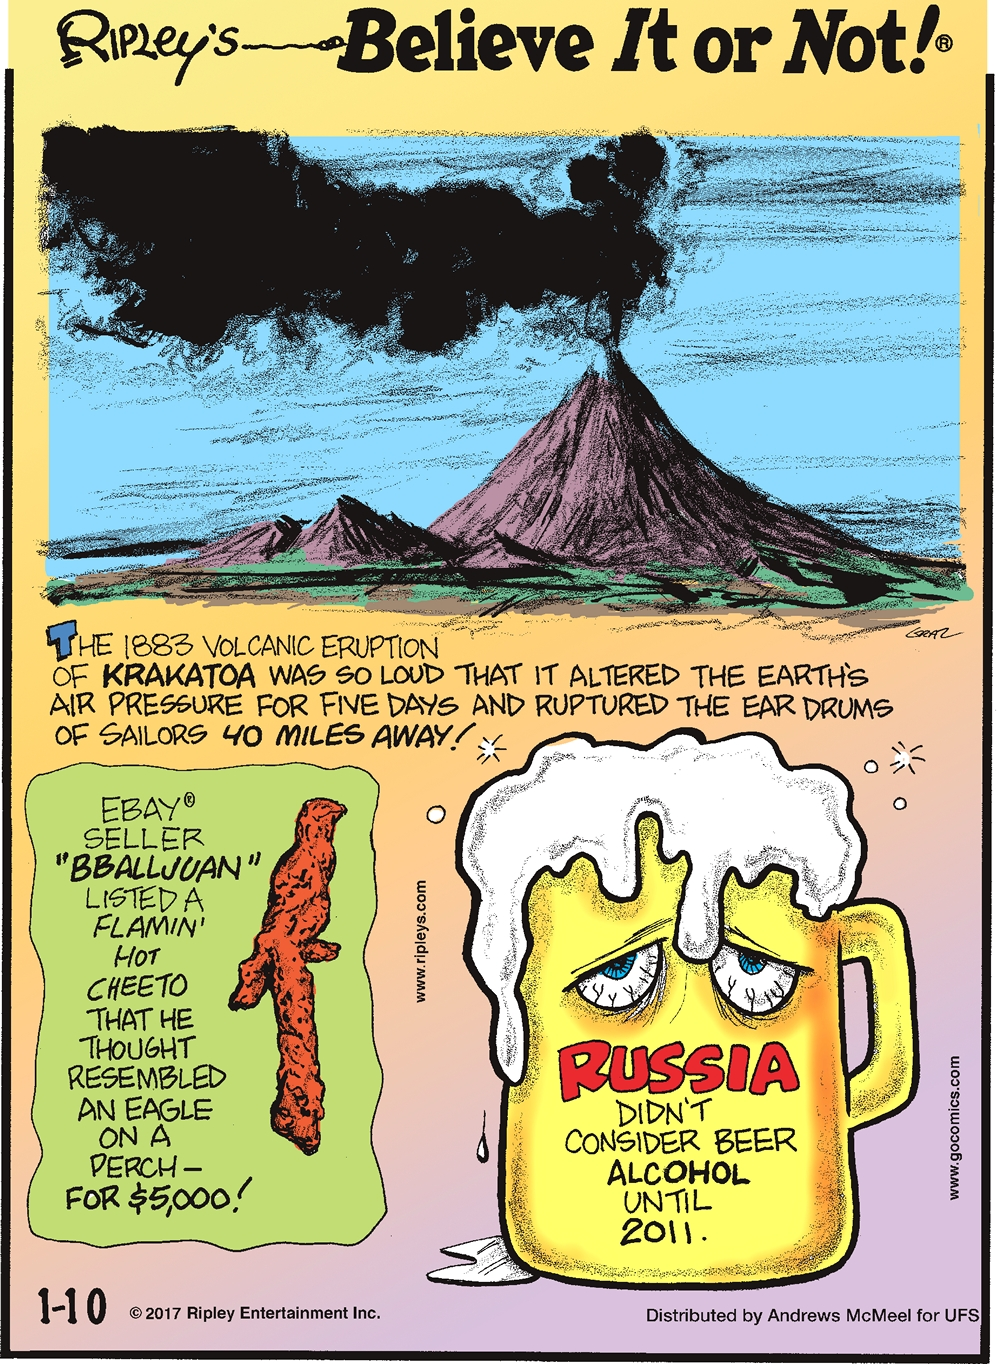 The 1883 Volcanic Eruption of Krakatoa was so loud that it altered the Earth's air pressure for five days and ruptured the ear drums of sailors 40 miles away!--------------------Ebay seller BBALLJUAN listed a Flamin' Hot Cheeto that he thought resembled an eagle on a perch-for $5,000!-------------------- Russia didn't consider beer alcohol until 2011.